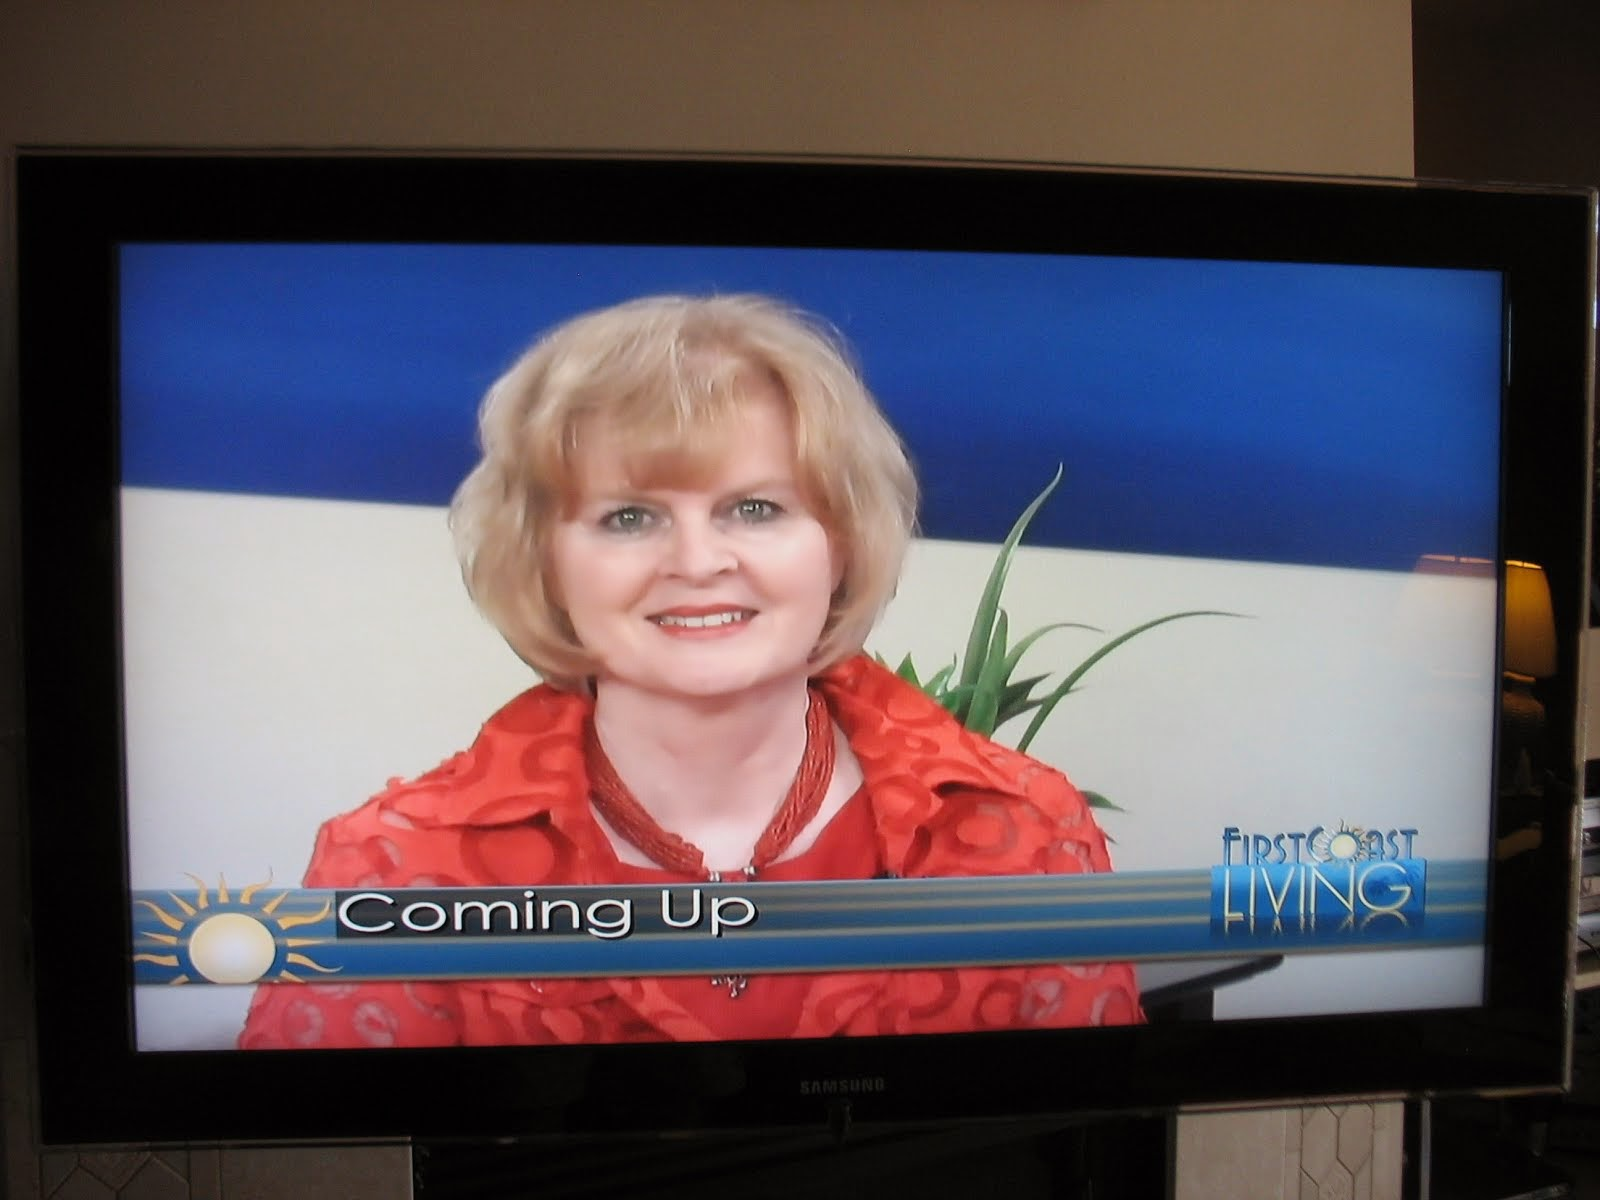 Second TV appearance on local NBC